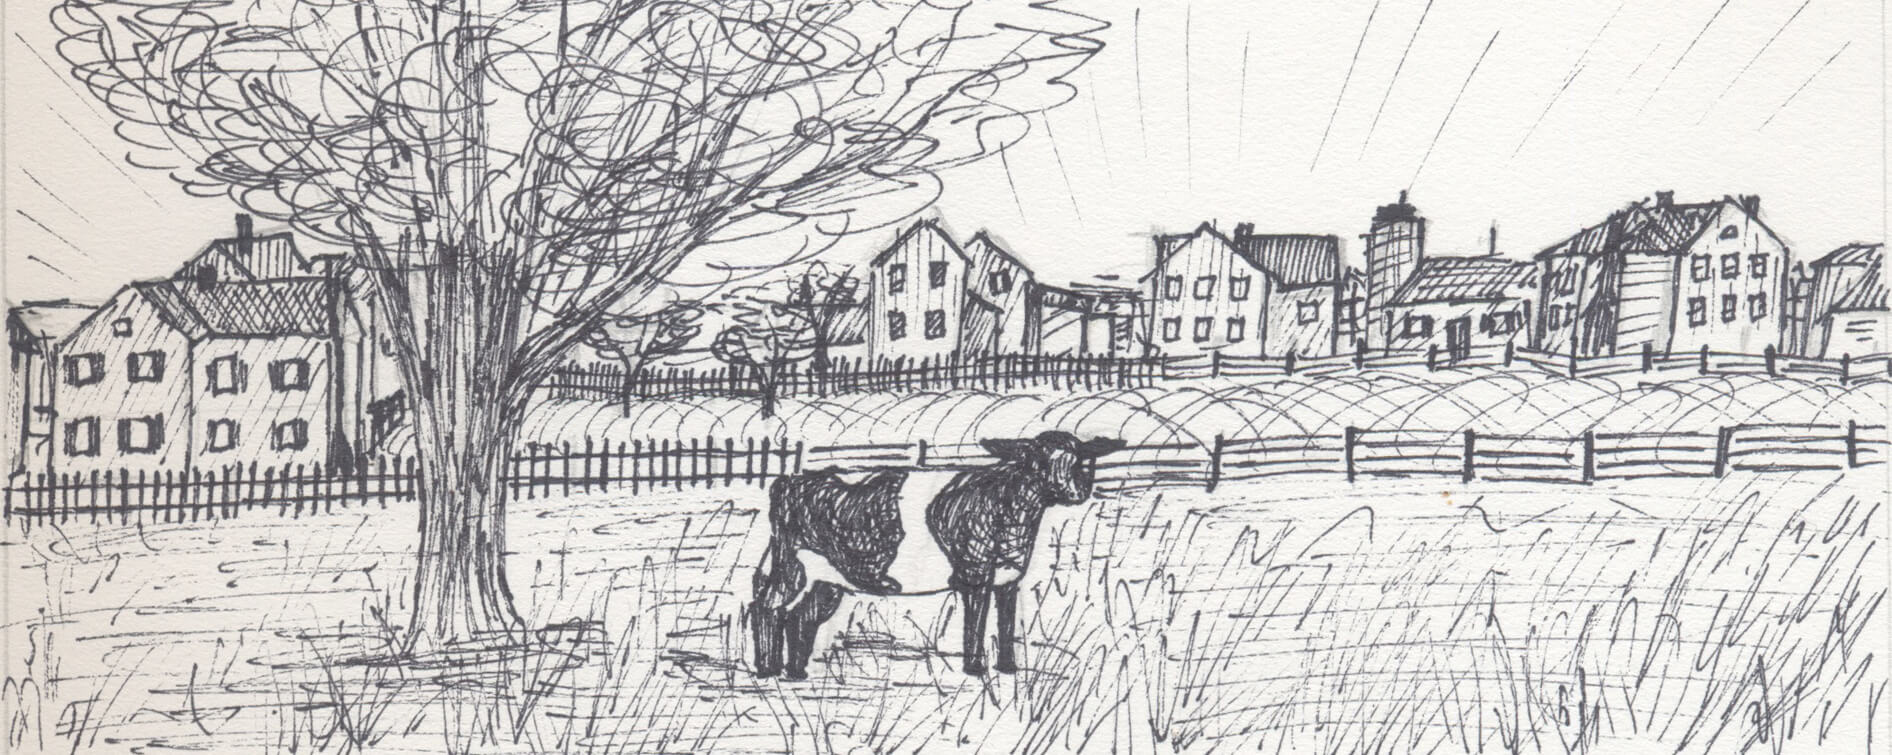 Black and White Drawings of Historic Gettysburg